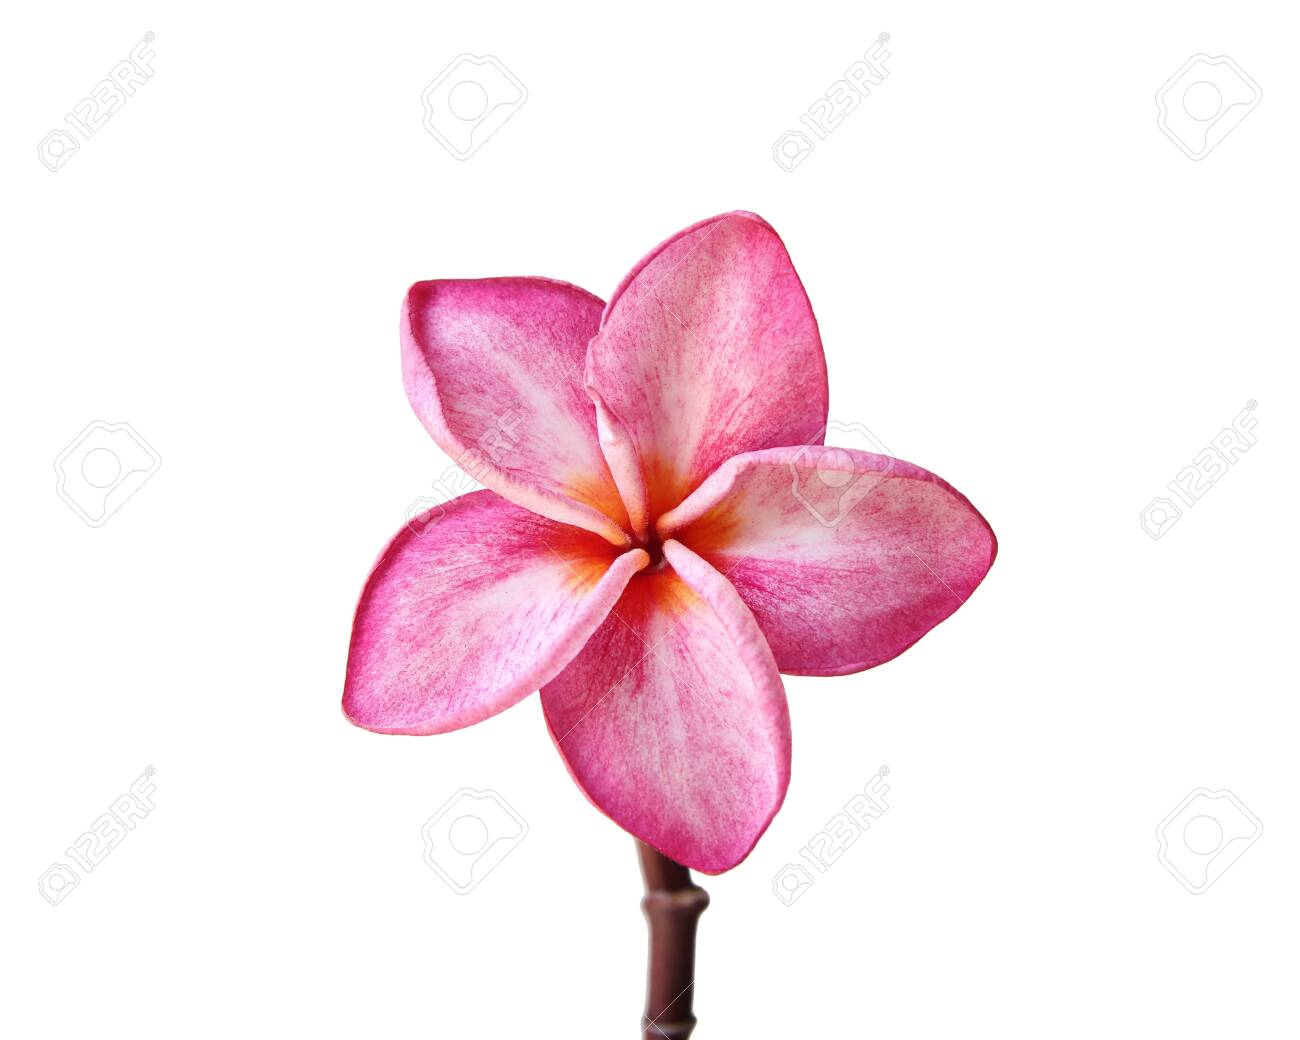 Close up of Pink plumeria flower isolated on white background - 146948048